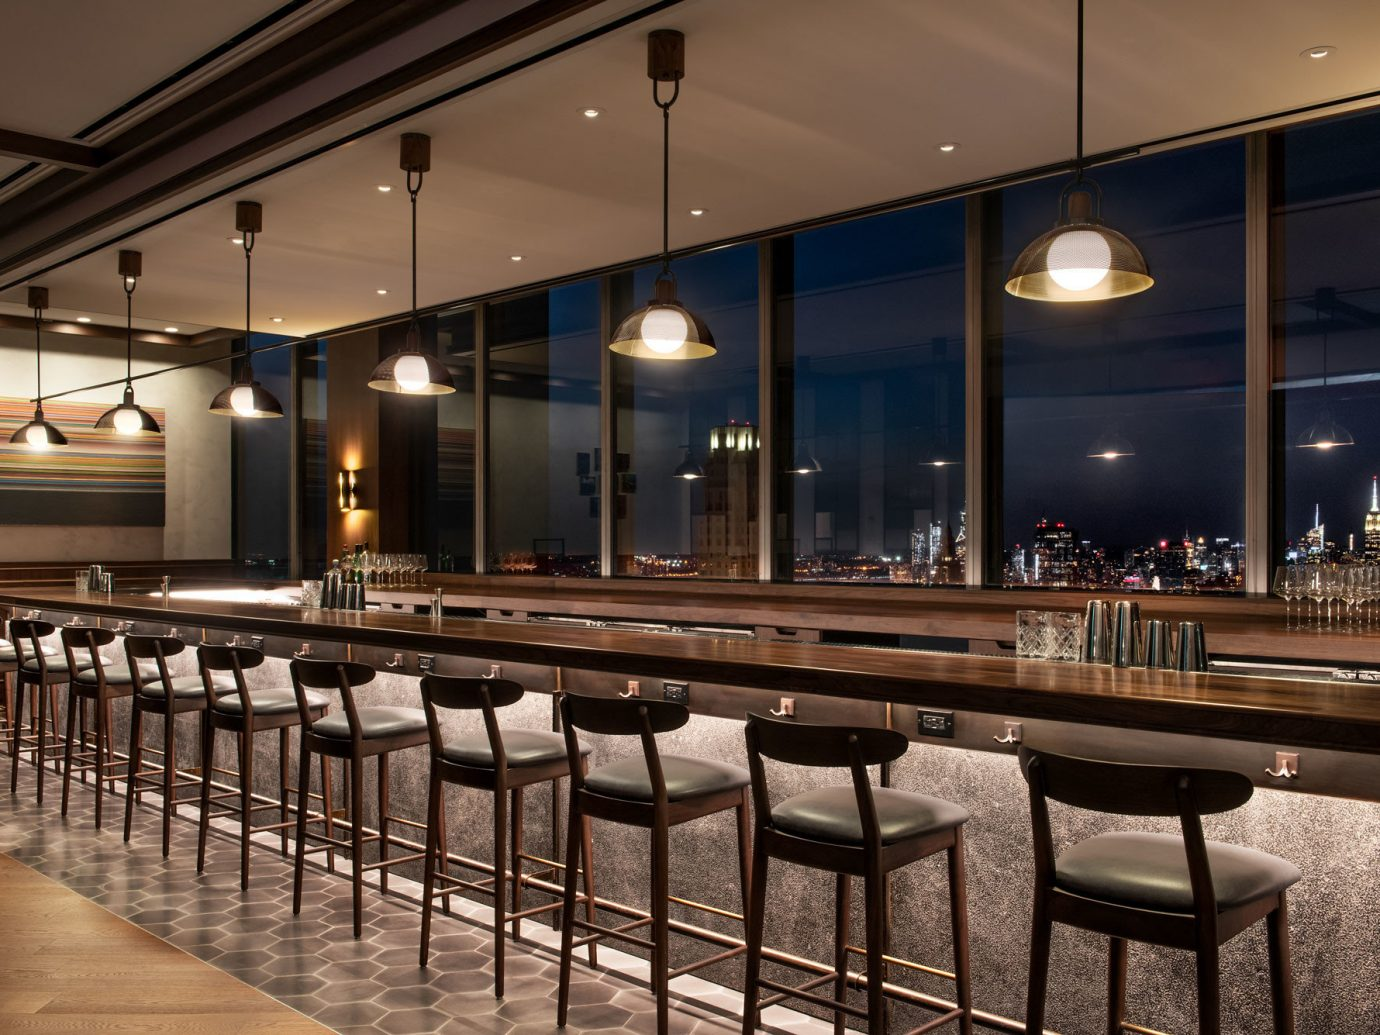 The bar at Manhatta in New York City